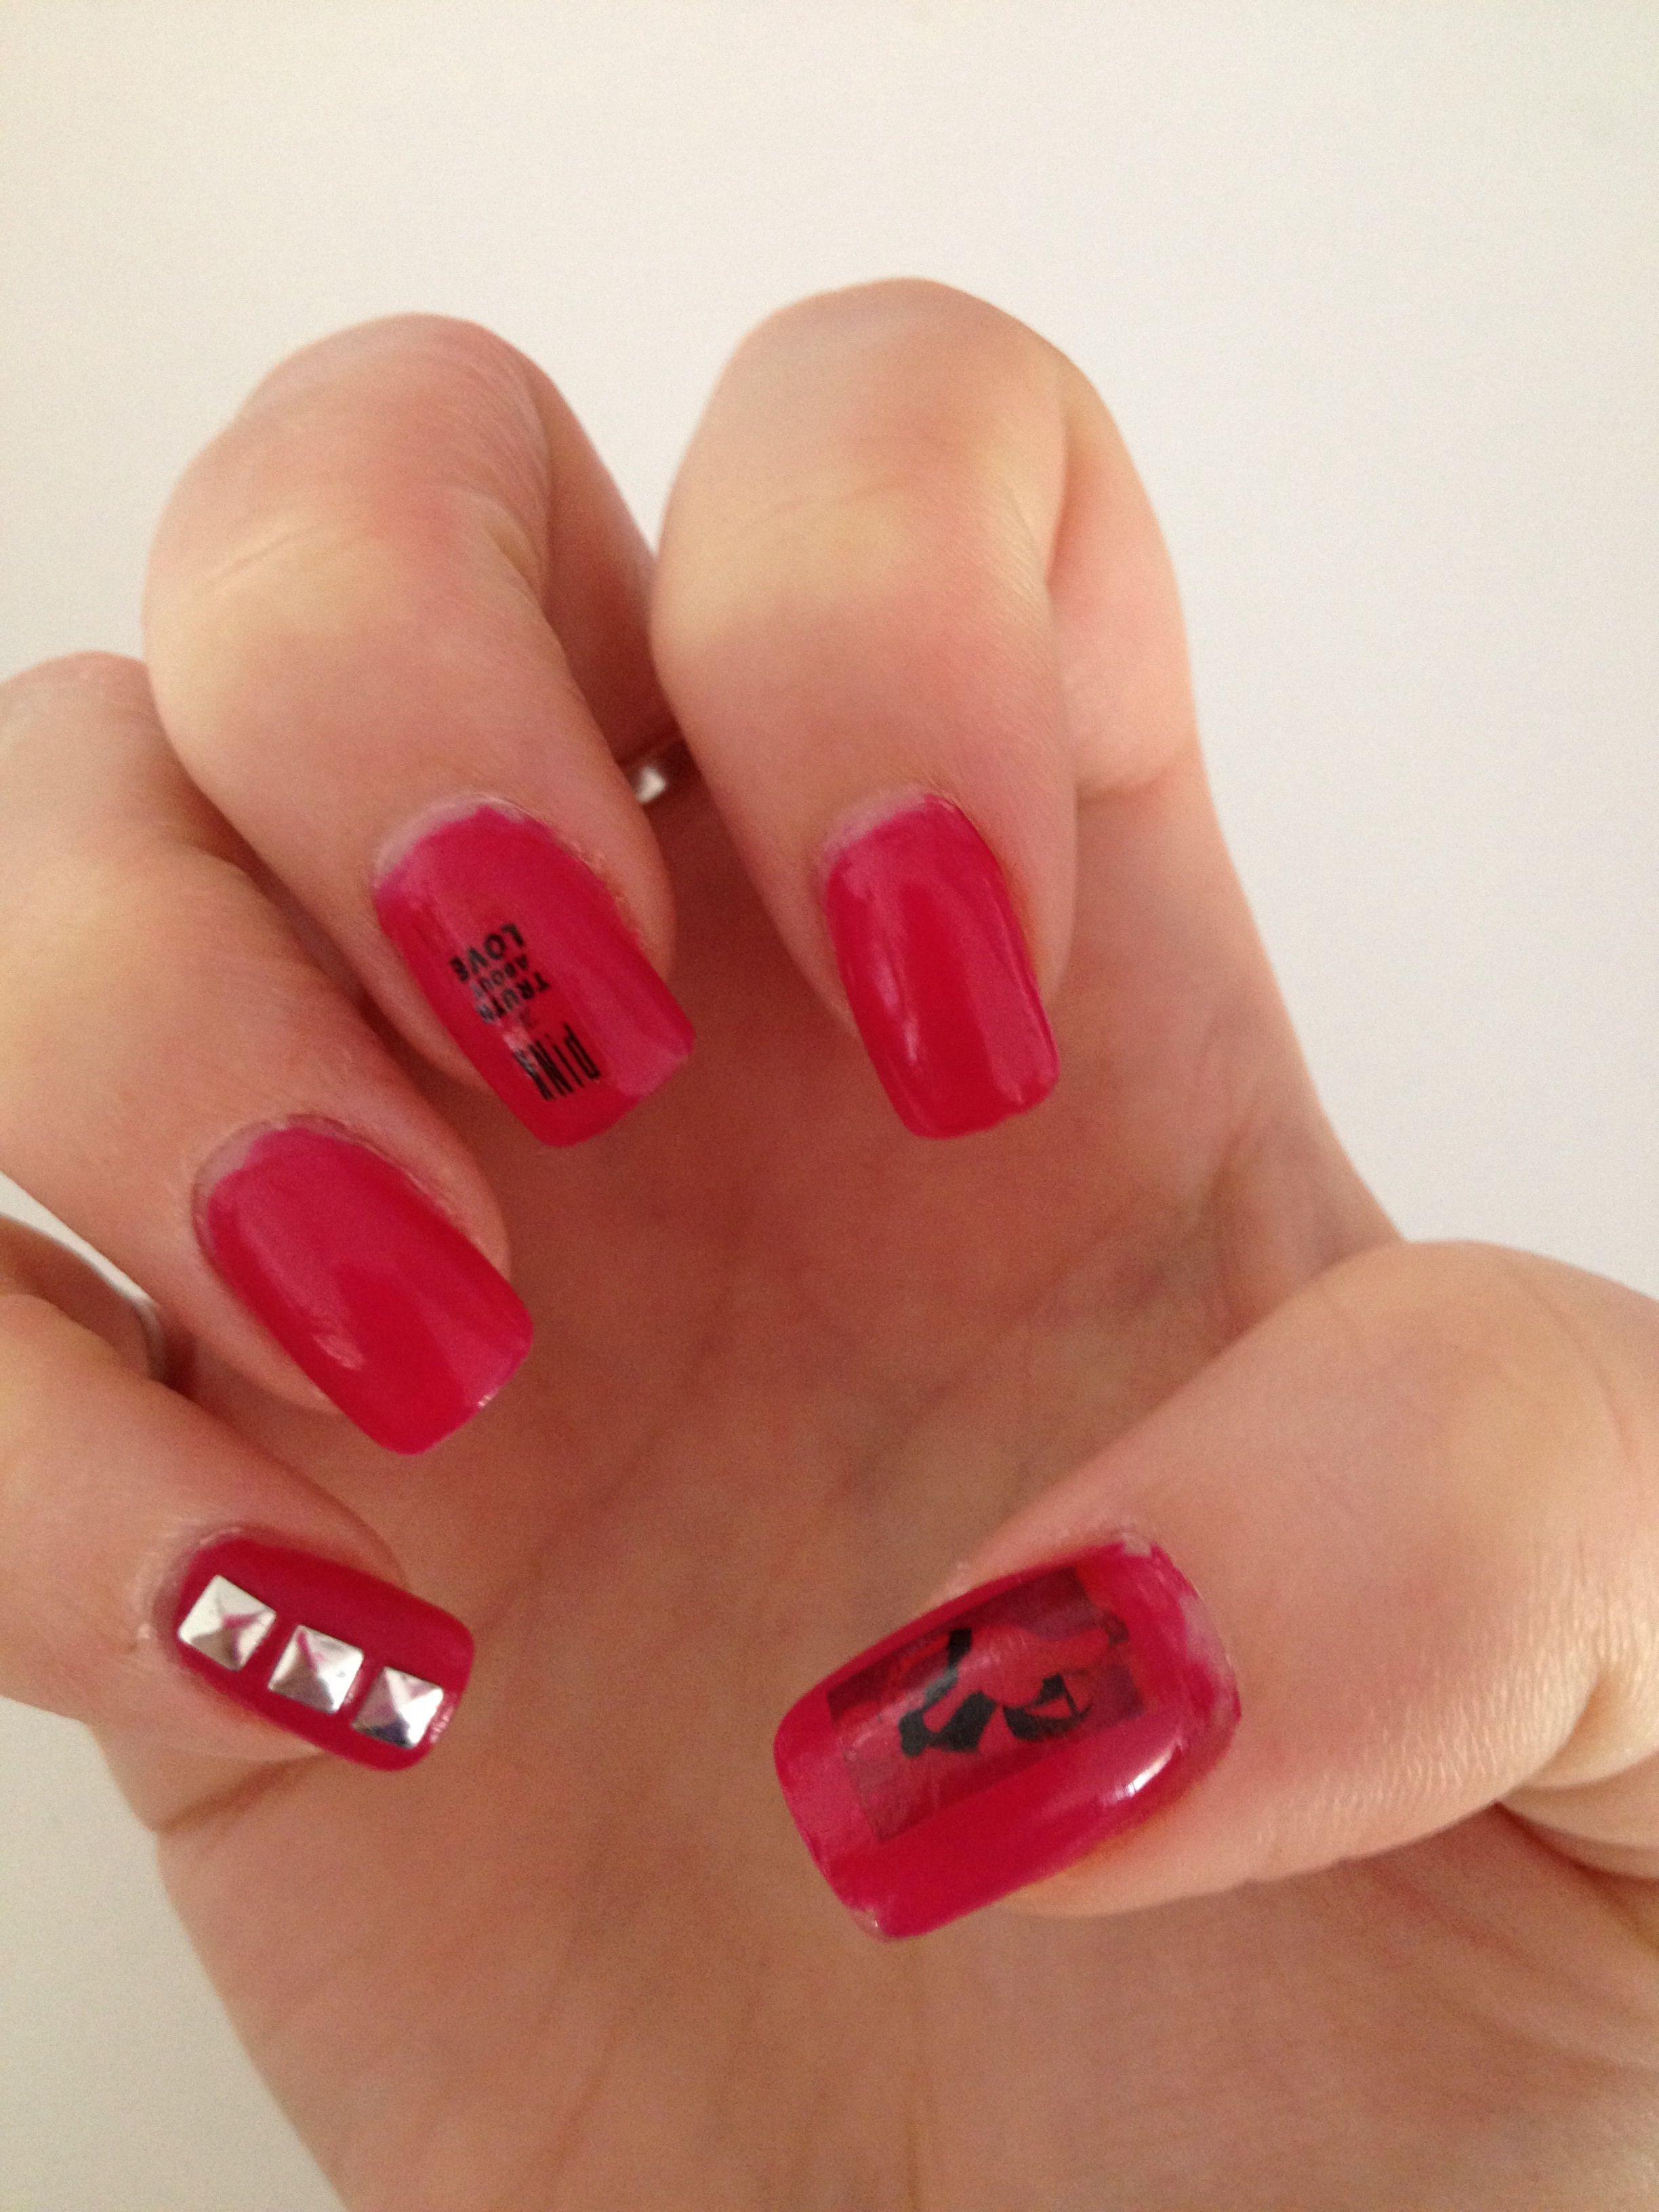 P!nk nails for her concert | Nails | Pinterest | Concerts, Nk nails ...